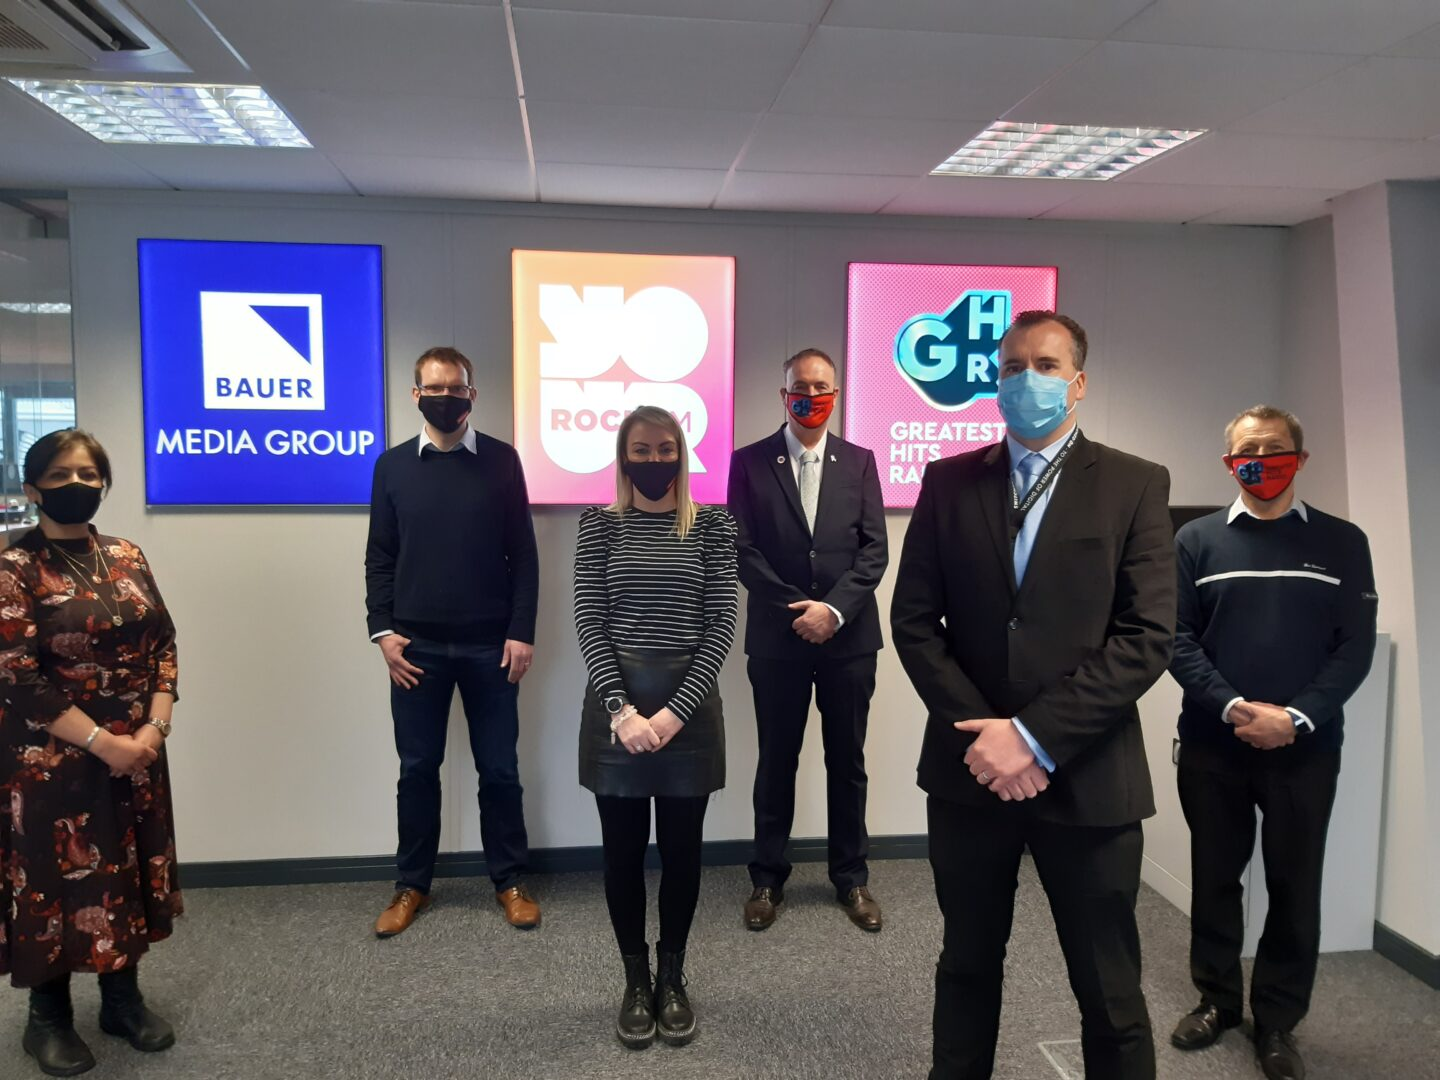 Pictured L-R: Shigufta Khan, Chief Executive Officer at The Wish Centre, Jonathan Breeze, Station Director, Rock FM & Greatest Hits Lancashire, Laura Hughes, Account Manager, Rock FM & Greatest Hits Lancashire, Clive Grunshaw, Police and Crime Commissioner, DCI Jason Richardson of Lancashire Police Public Protection Unit and Paul Cartwright, Operations Manager, Lancashire Victims Services.